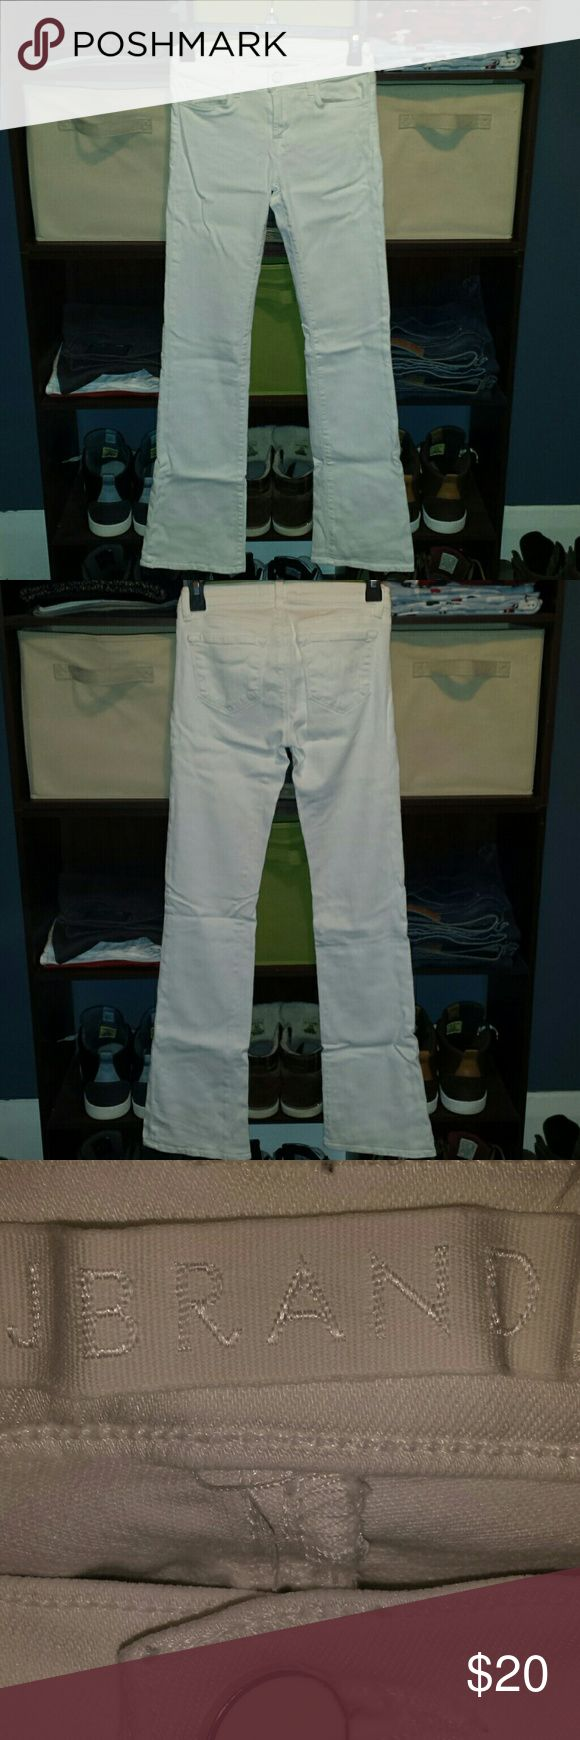 J Brand White Stretch Jeans Curve hugging J Brand stretch flare jeans size 25. Would bundle great with black and silver jewelry listed for sale! Perfect with sandals or heels in the summer! Will iron and steam before shipping!! 31 inch inseam. Accessories not included. J Brand Jeans